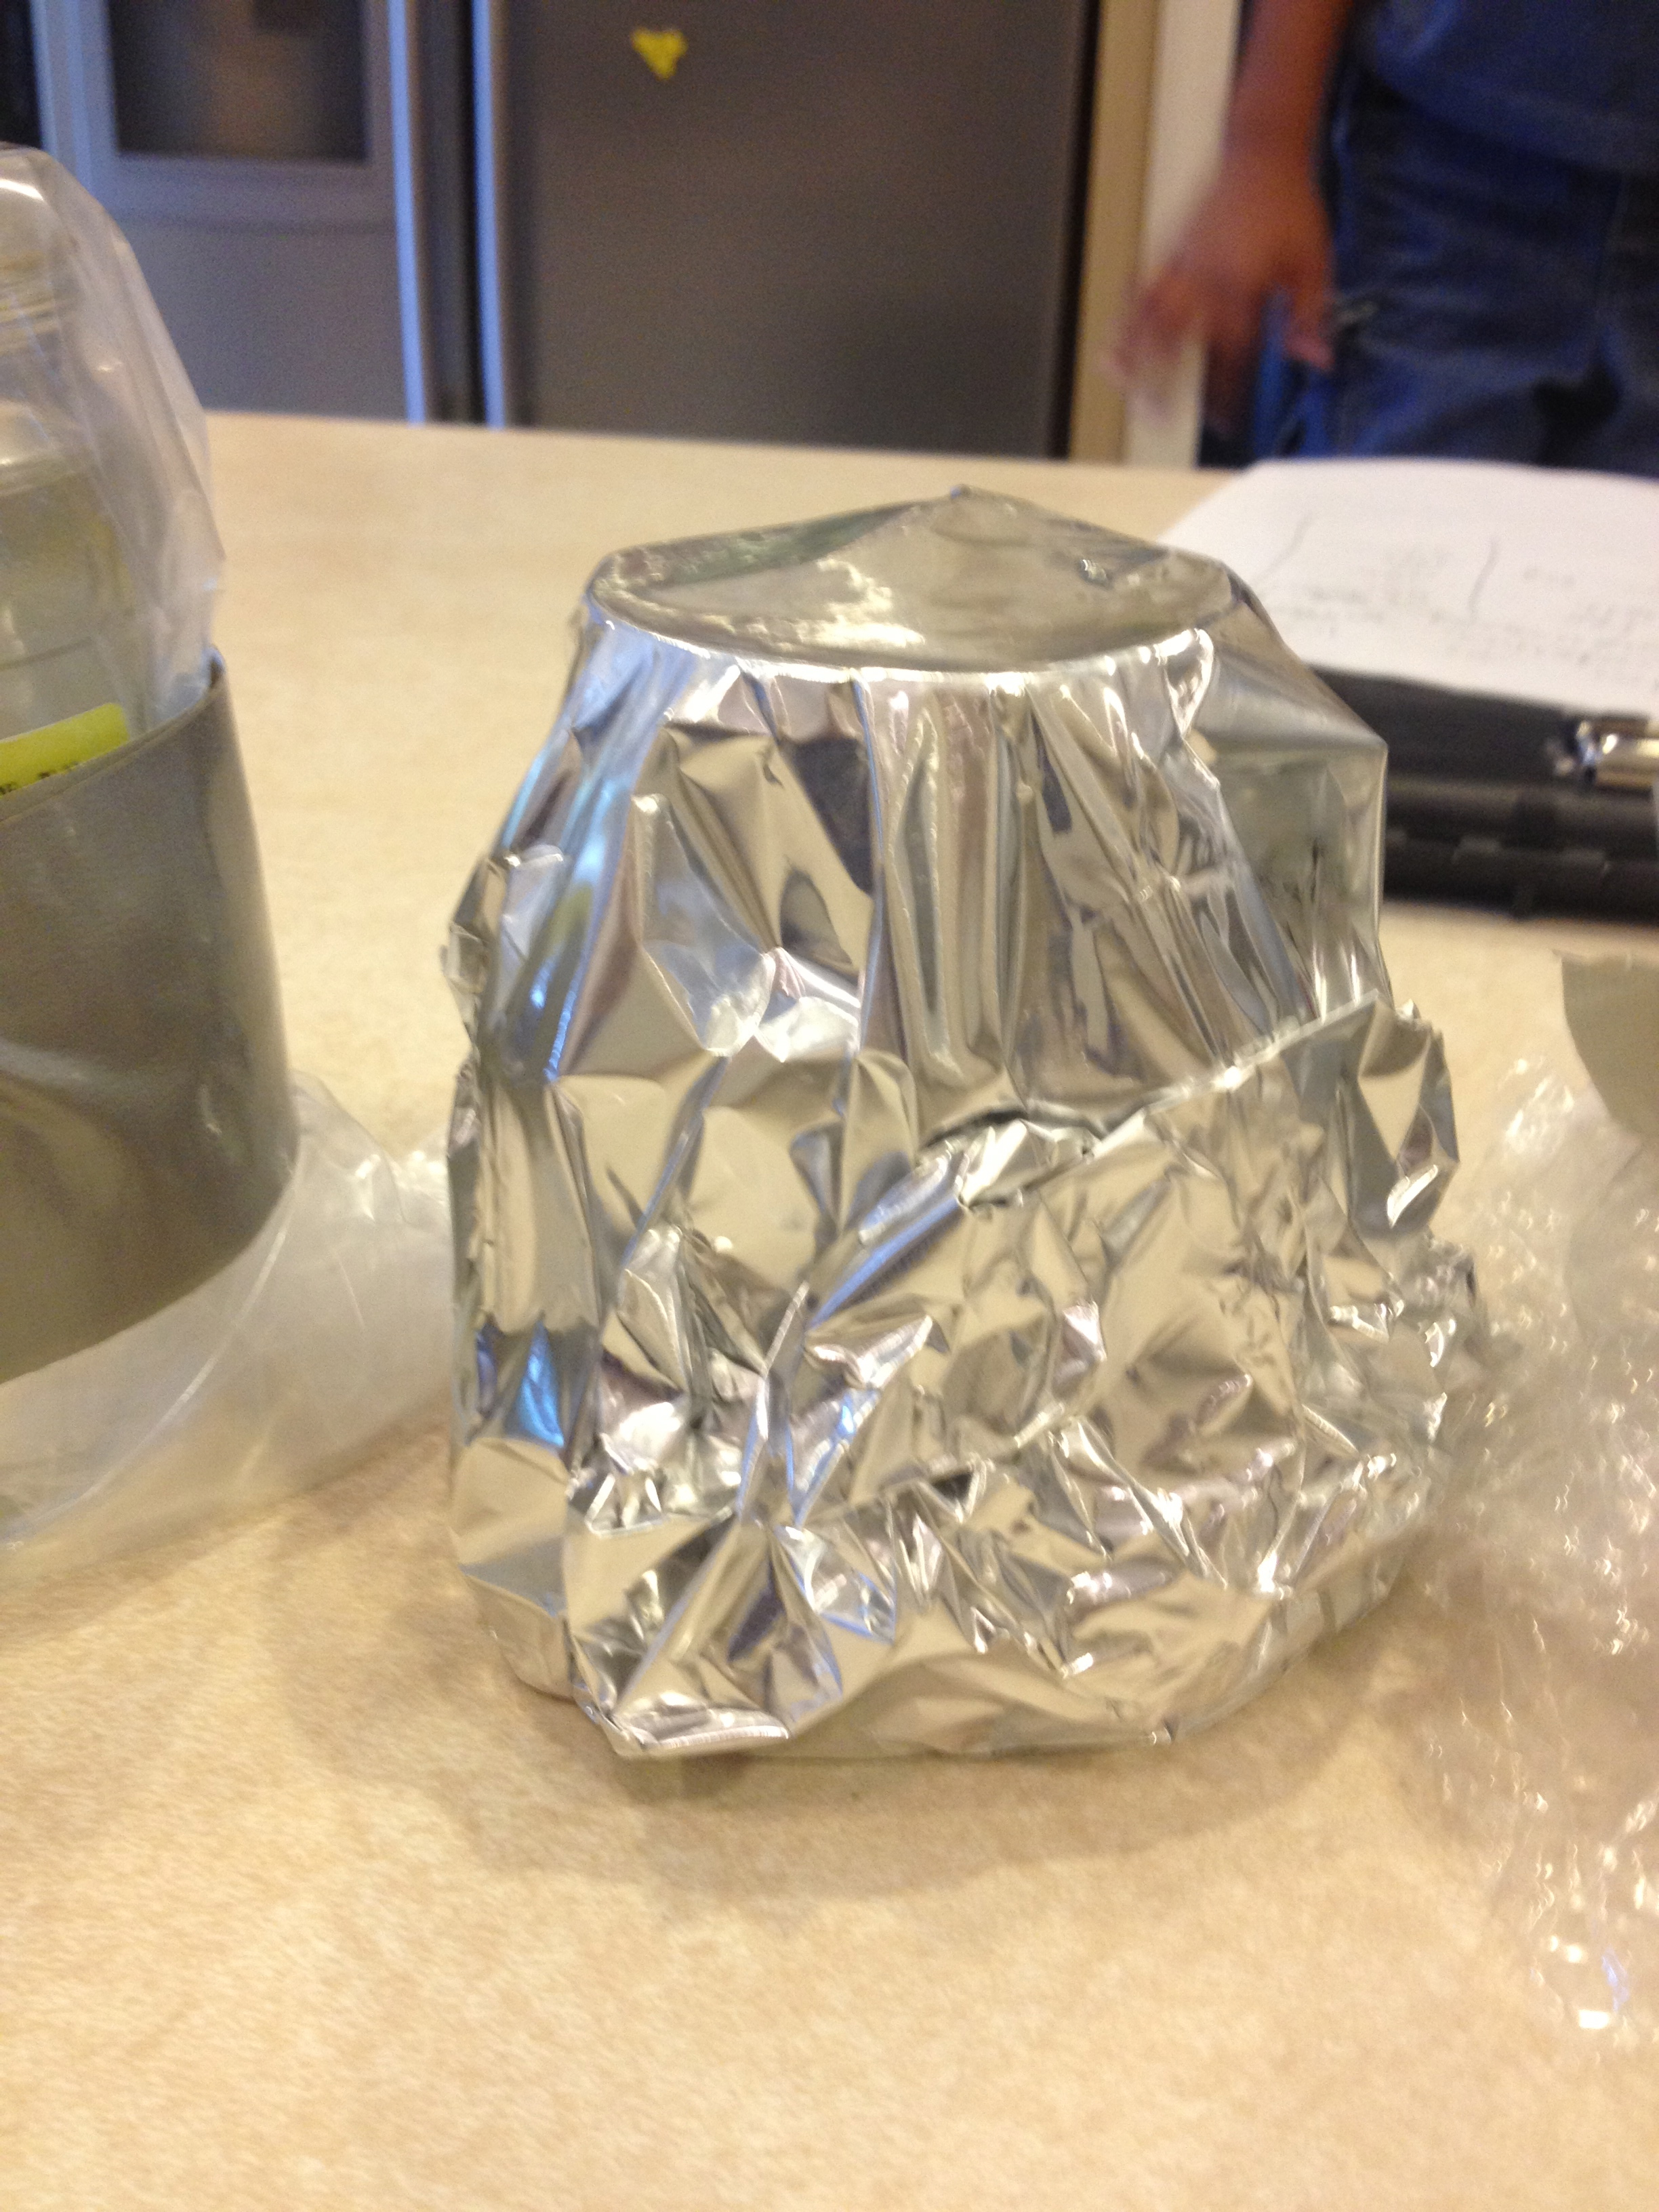 Tin Foil Conductor : Conductor or insulator science experiment « shruti gupta